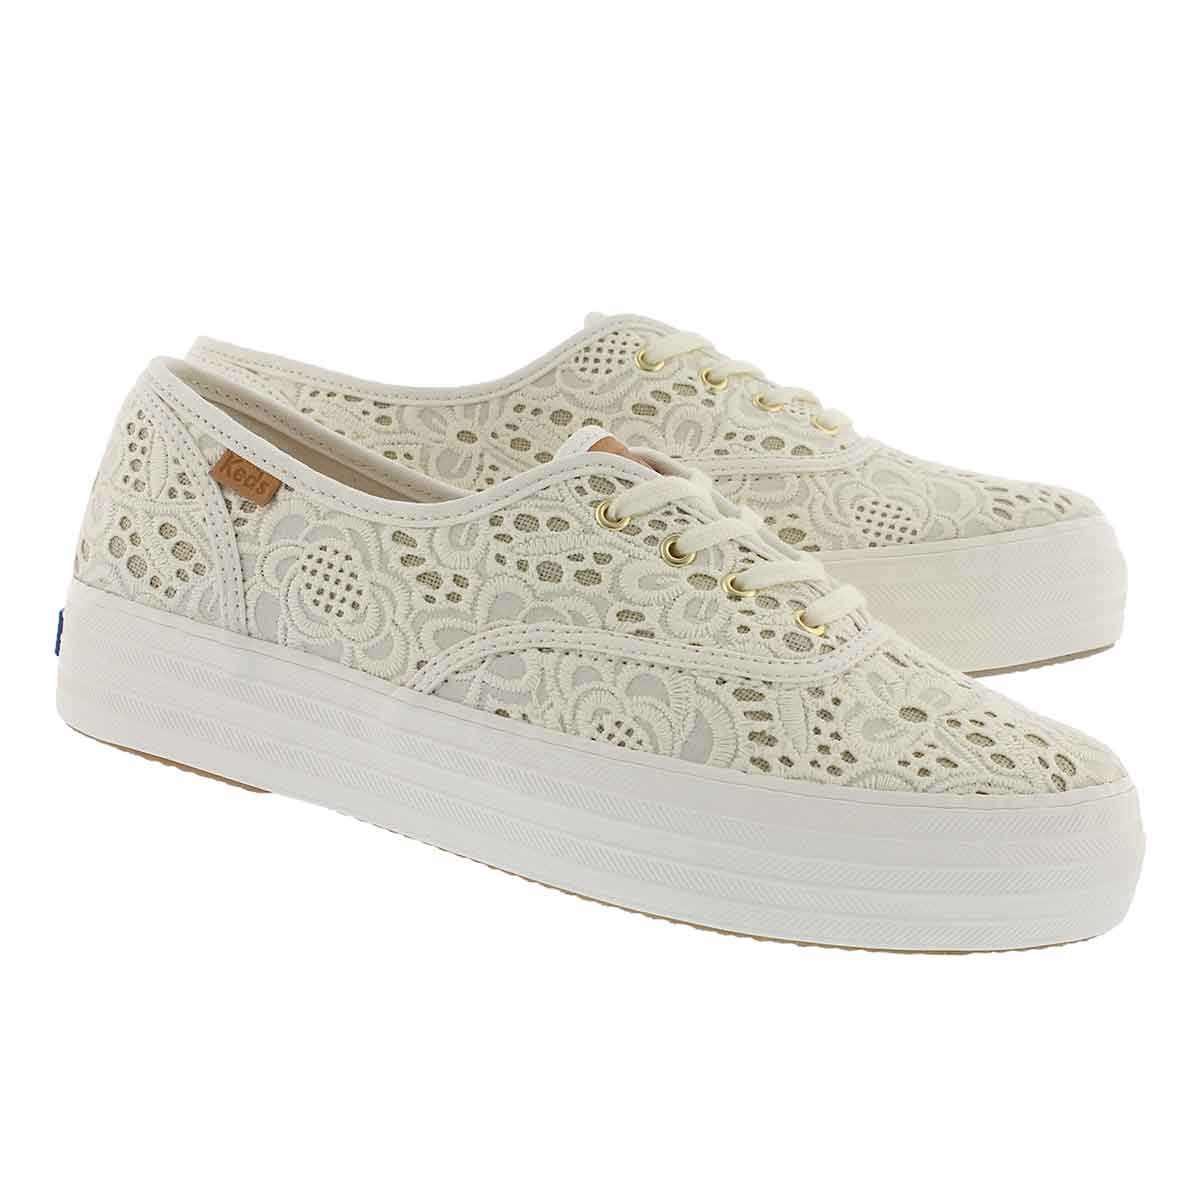 Lds Triple Embroidered Crochet crm snkr